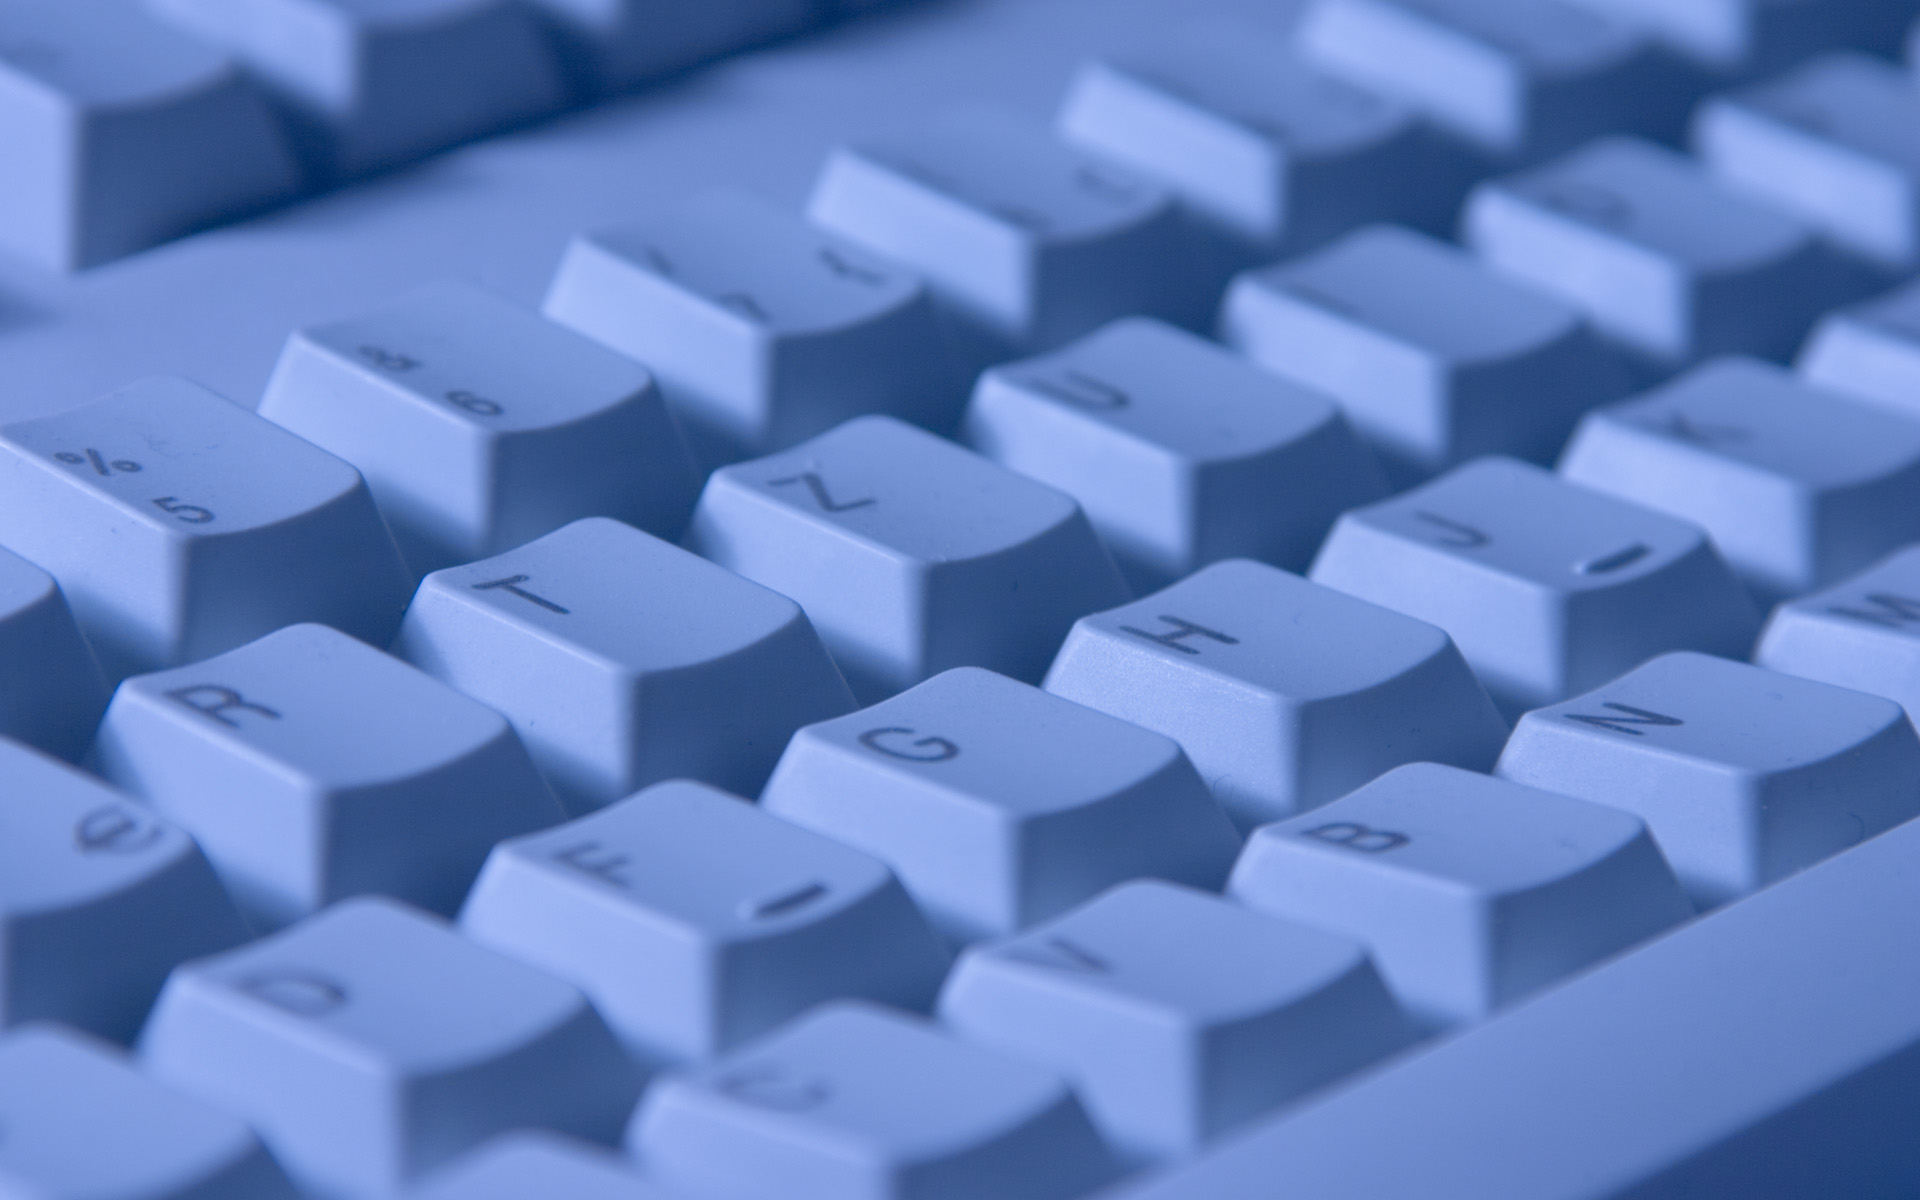 18 excellent hd keyboard wallpapers